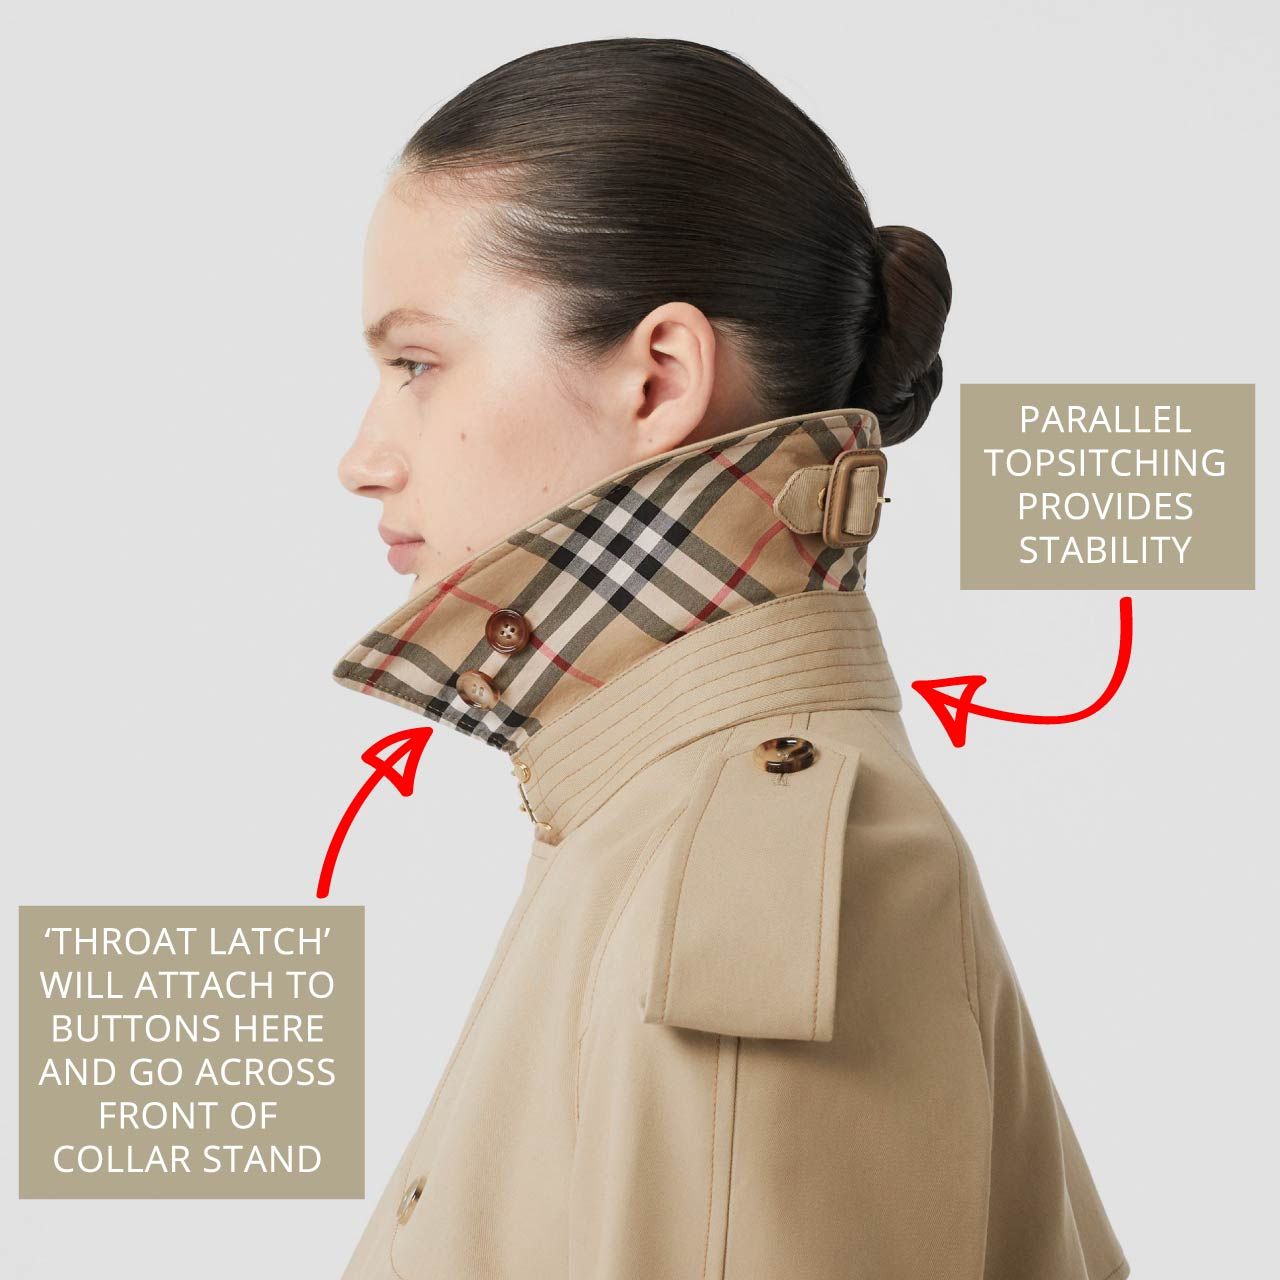 Throat latch hinges around and attaches to buttons on undercollar to close up front of trench collar. Burberry trench, The Cutting Class.